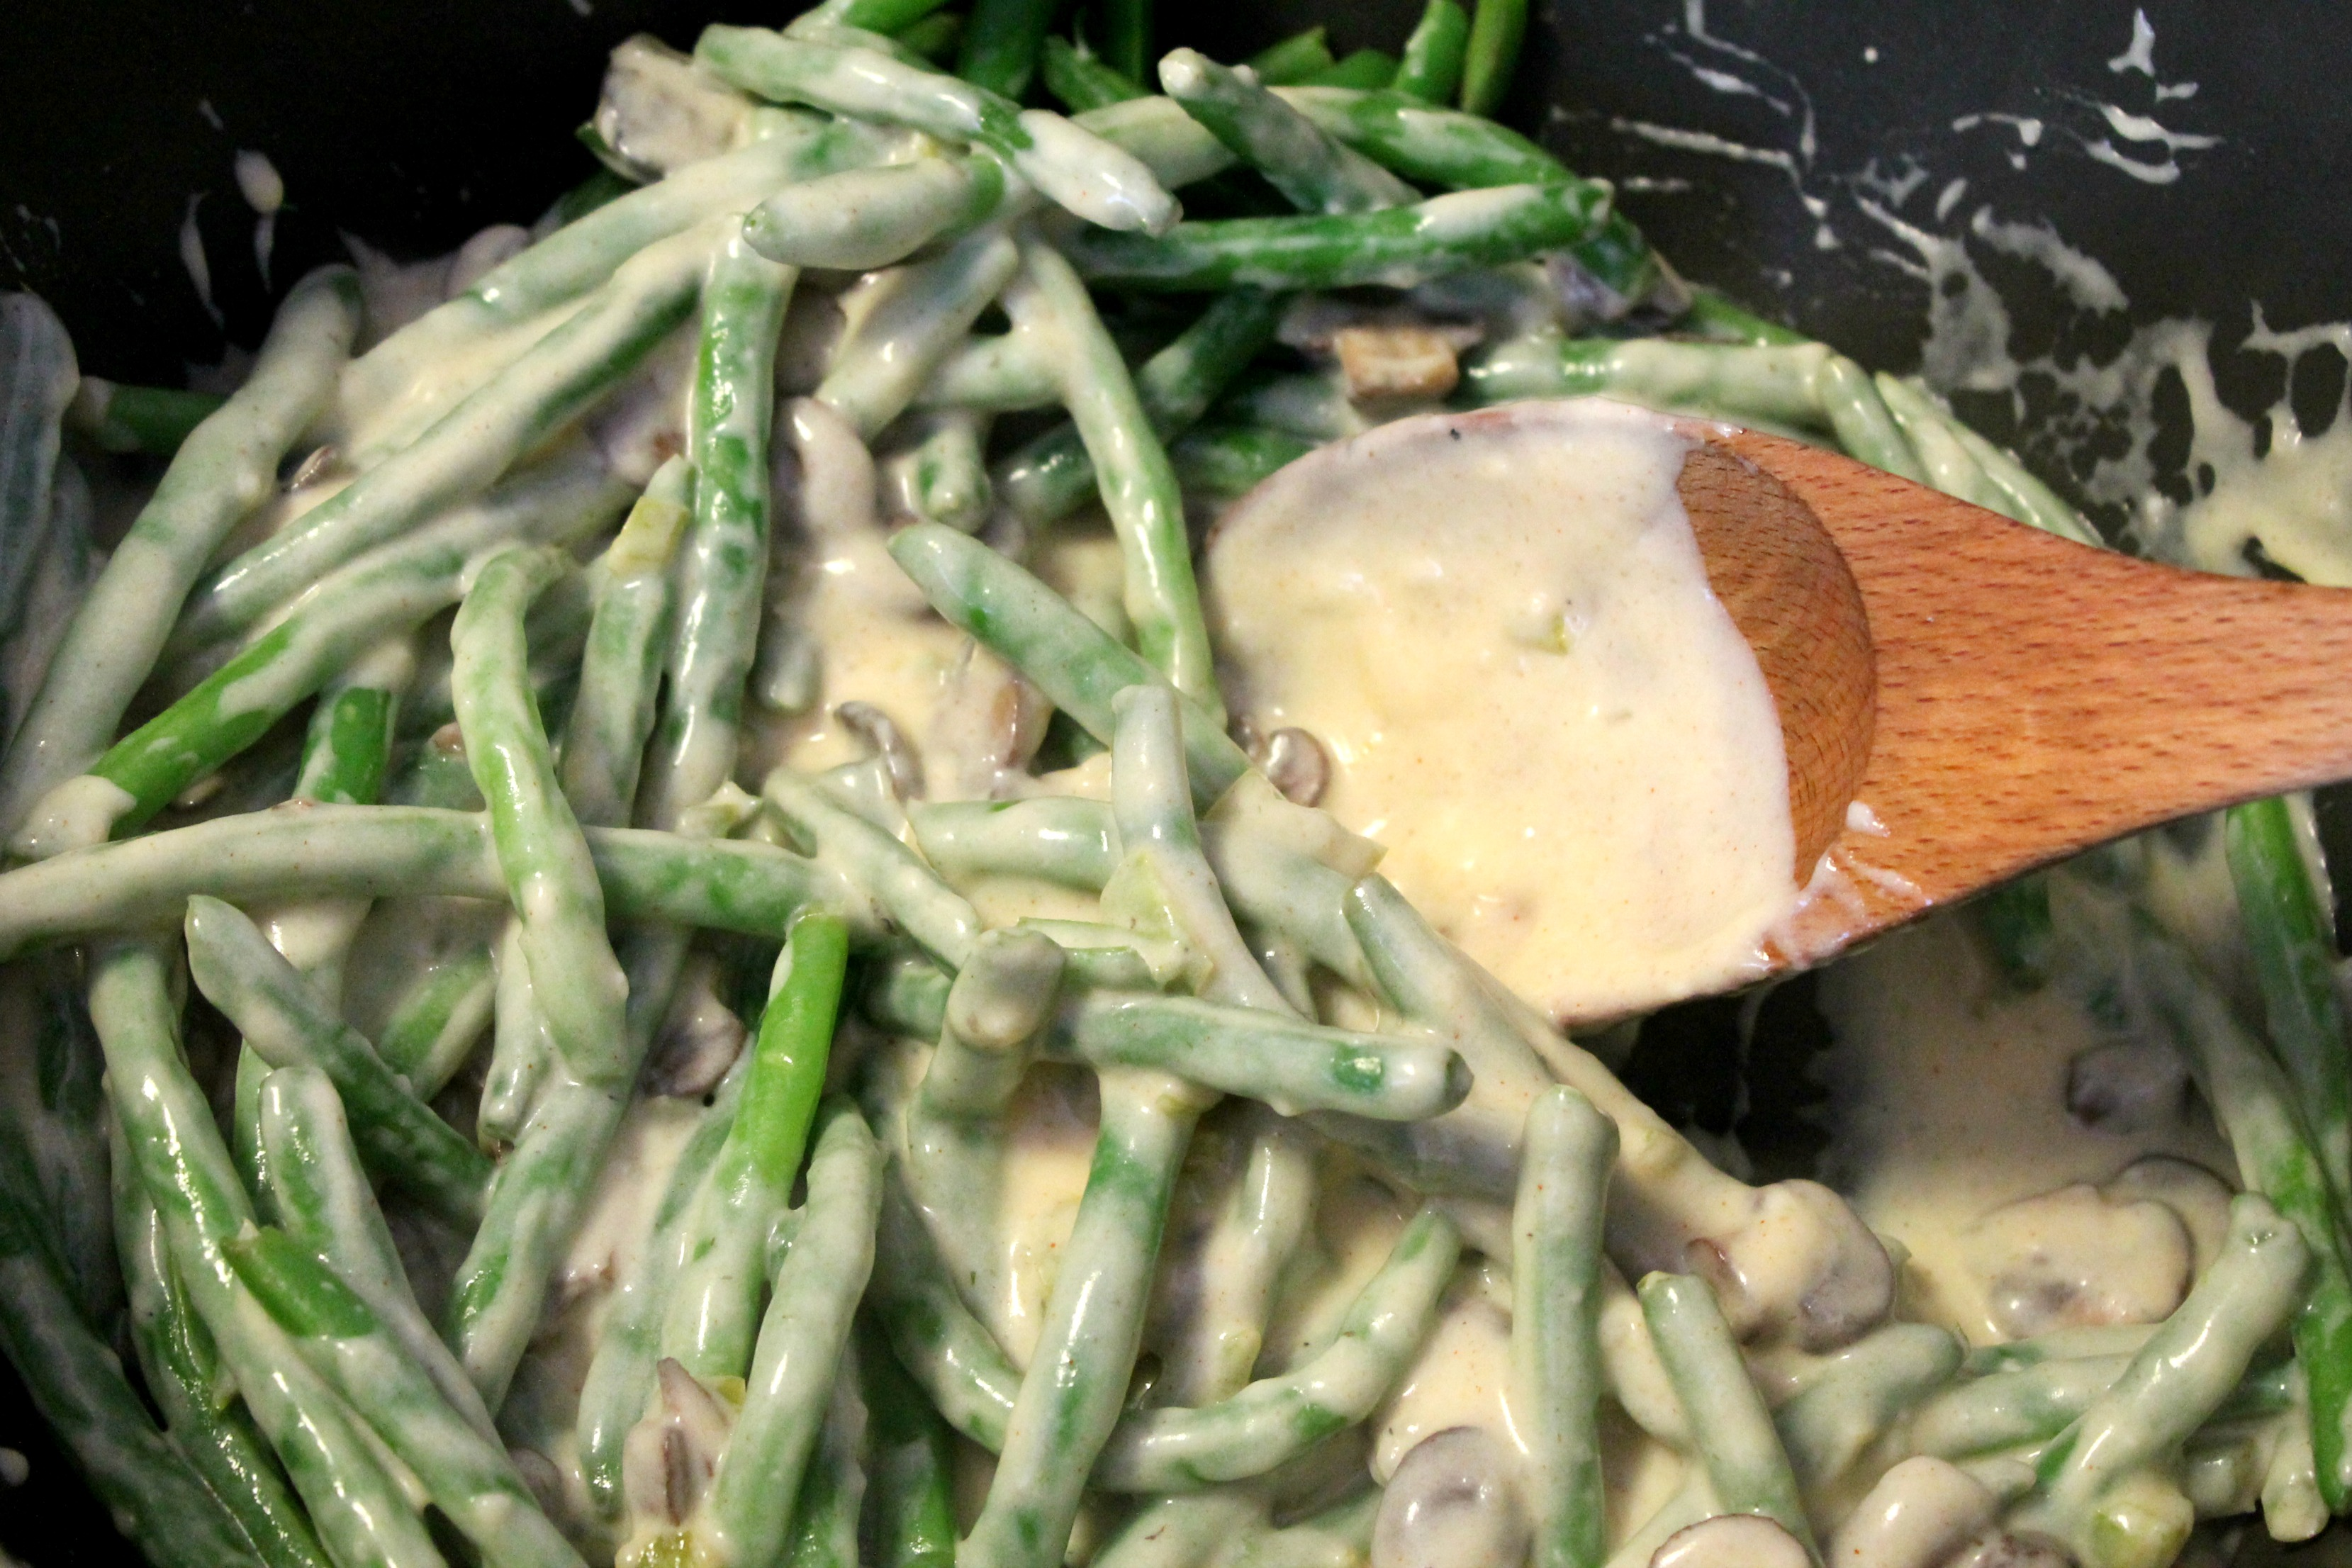 ... beans in a creamy green beans with creamy green bean and mushroom